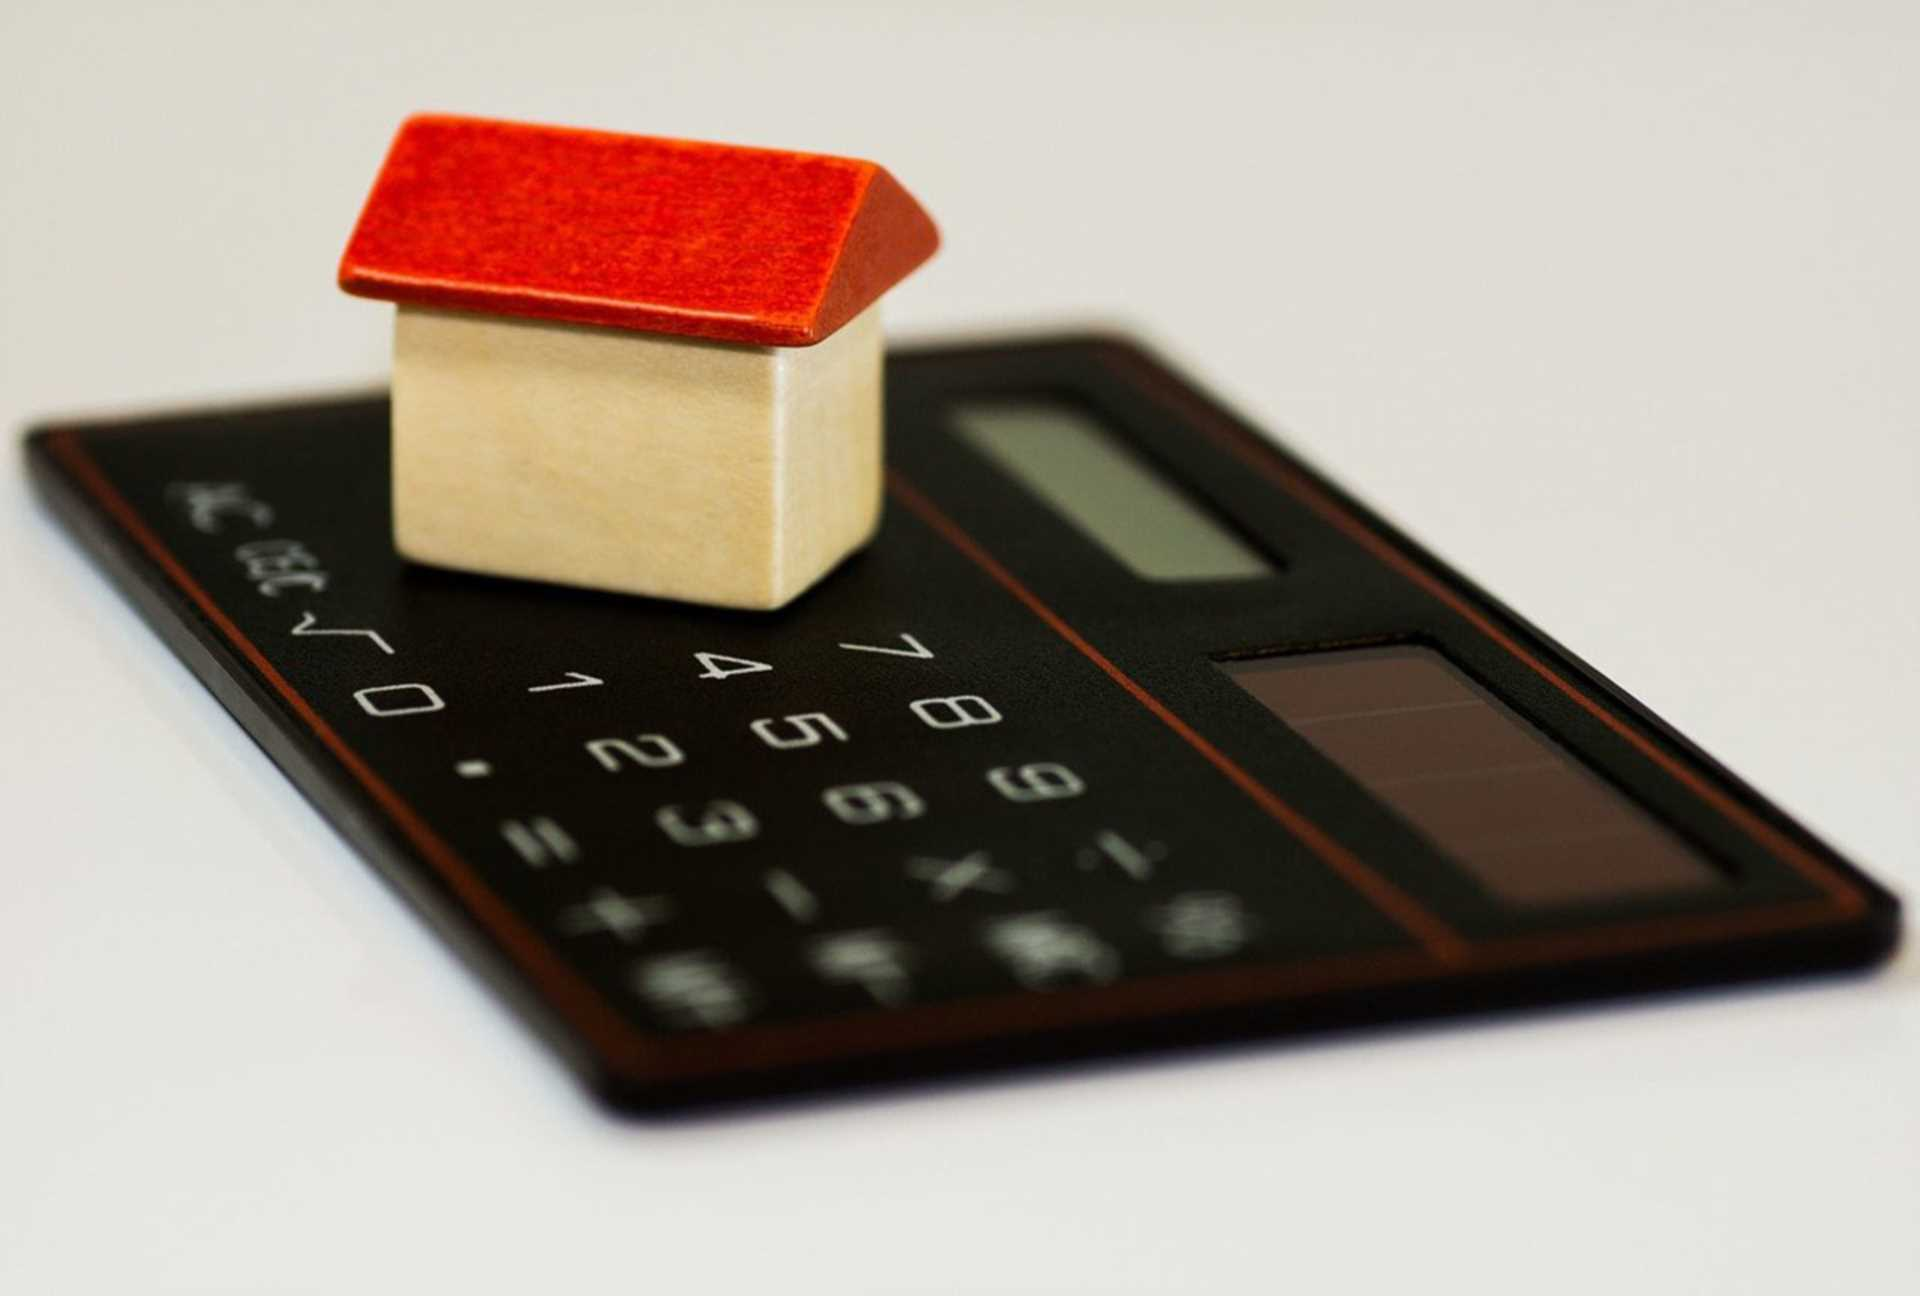 Buy-to-Let Mortgages: What Landlords Need to Know